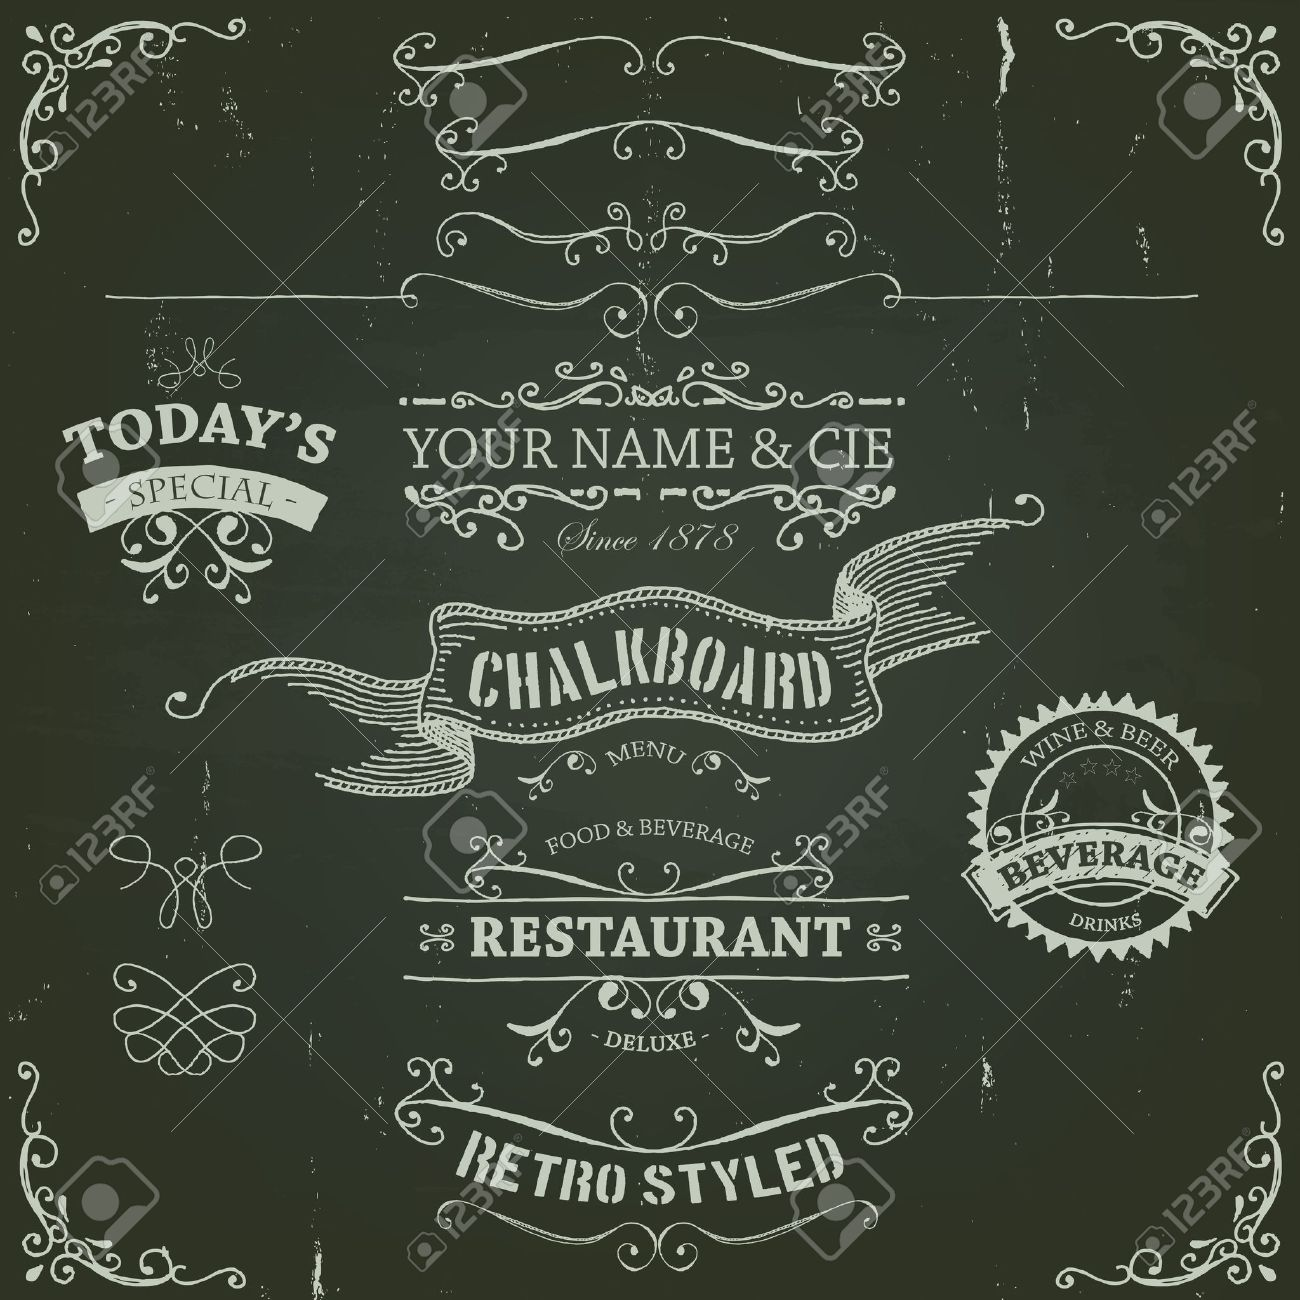 Illustration of a set of hand drawn sketched banners, ribbons for food, restaurant and beverage design elements on chalkboard background Stock Vector - 20046859